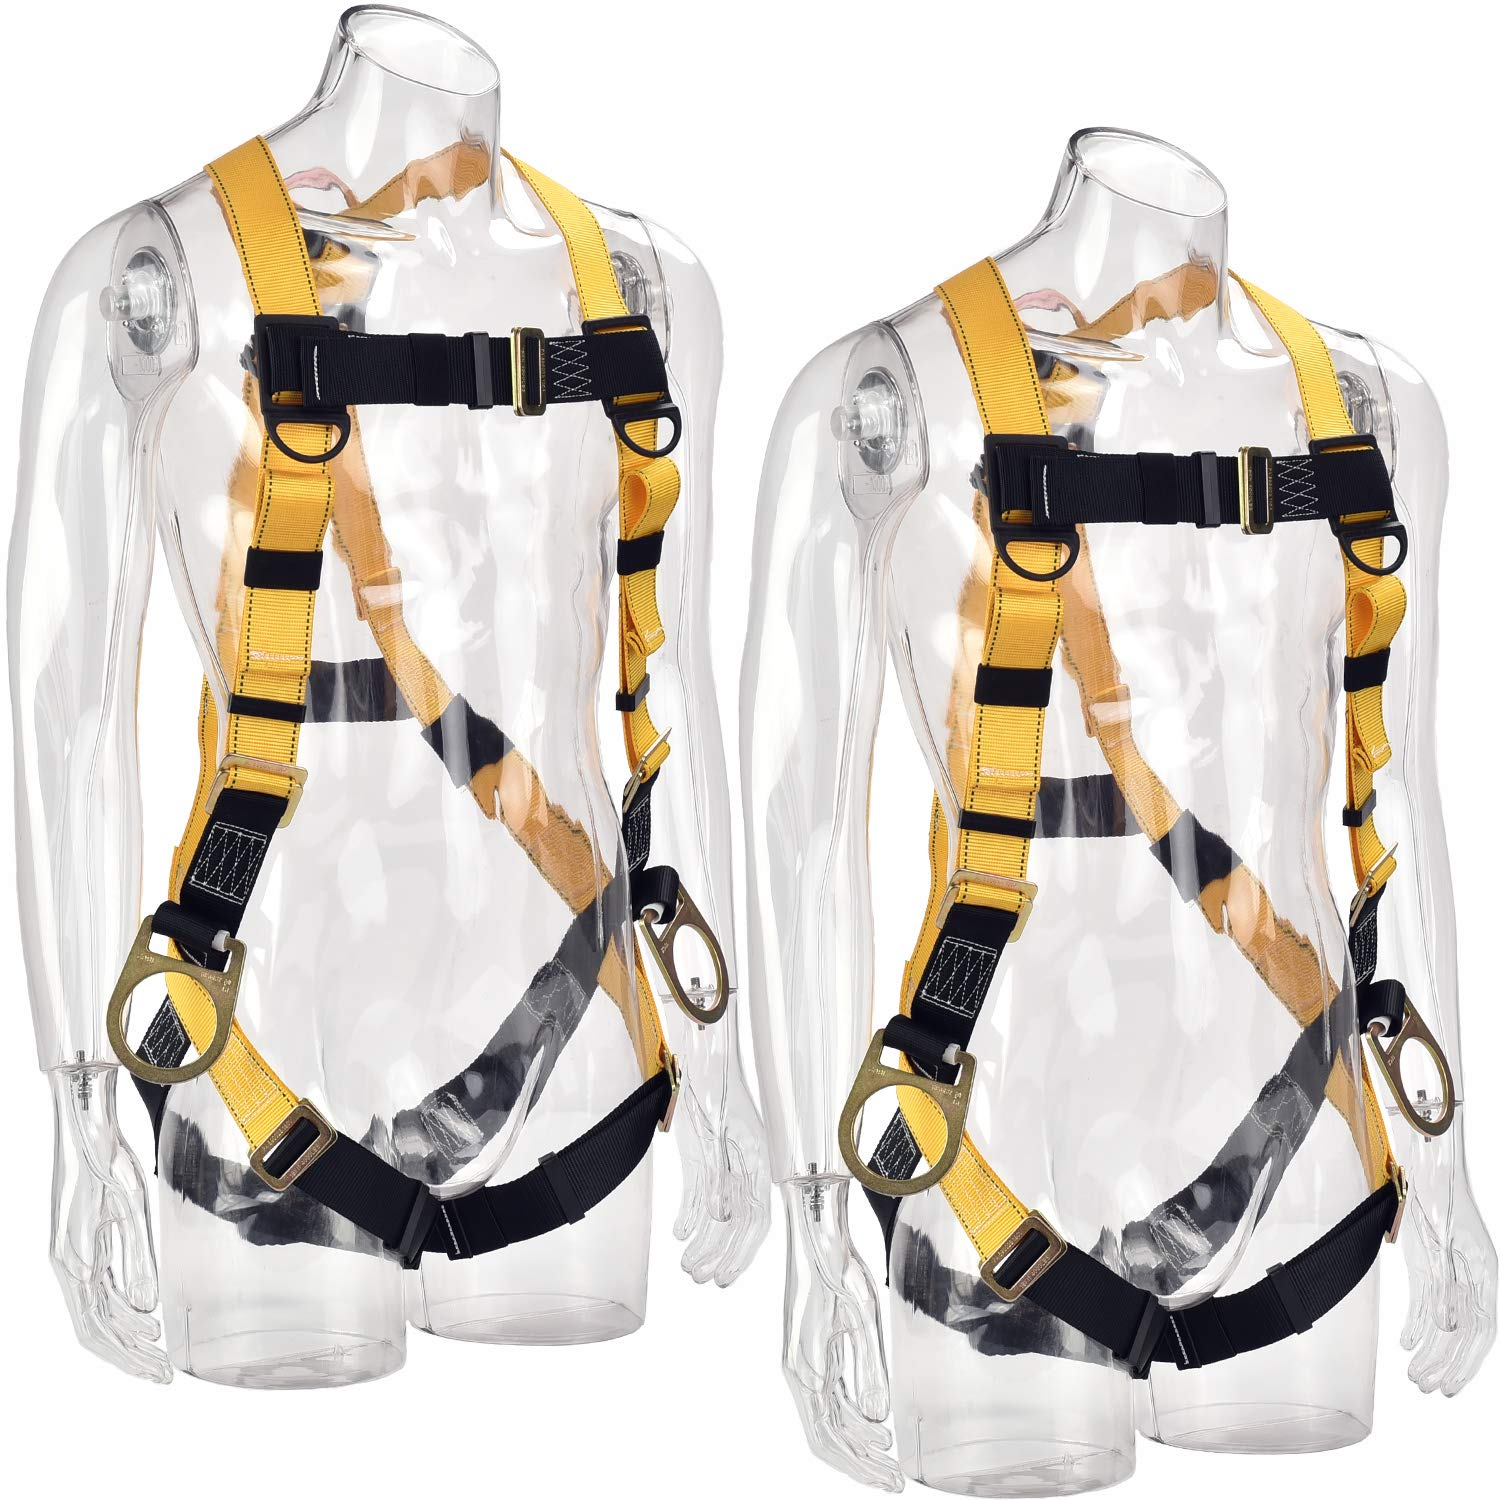 WELKFORDER [2-PACK] 3D-Rings Industrial Fall Protection Full Body Safety Harness ANSI Certified Personal Protection Equipment